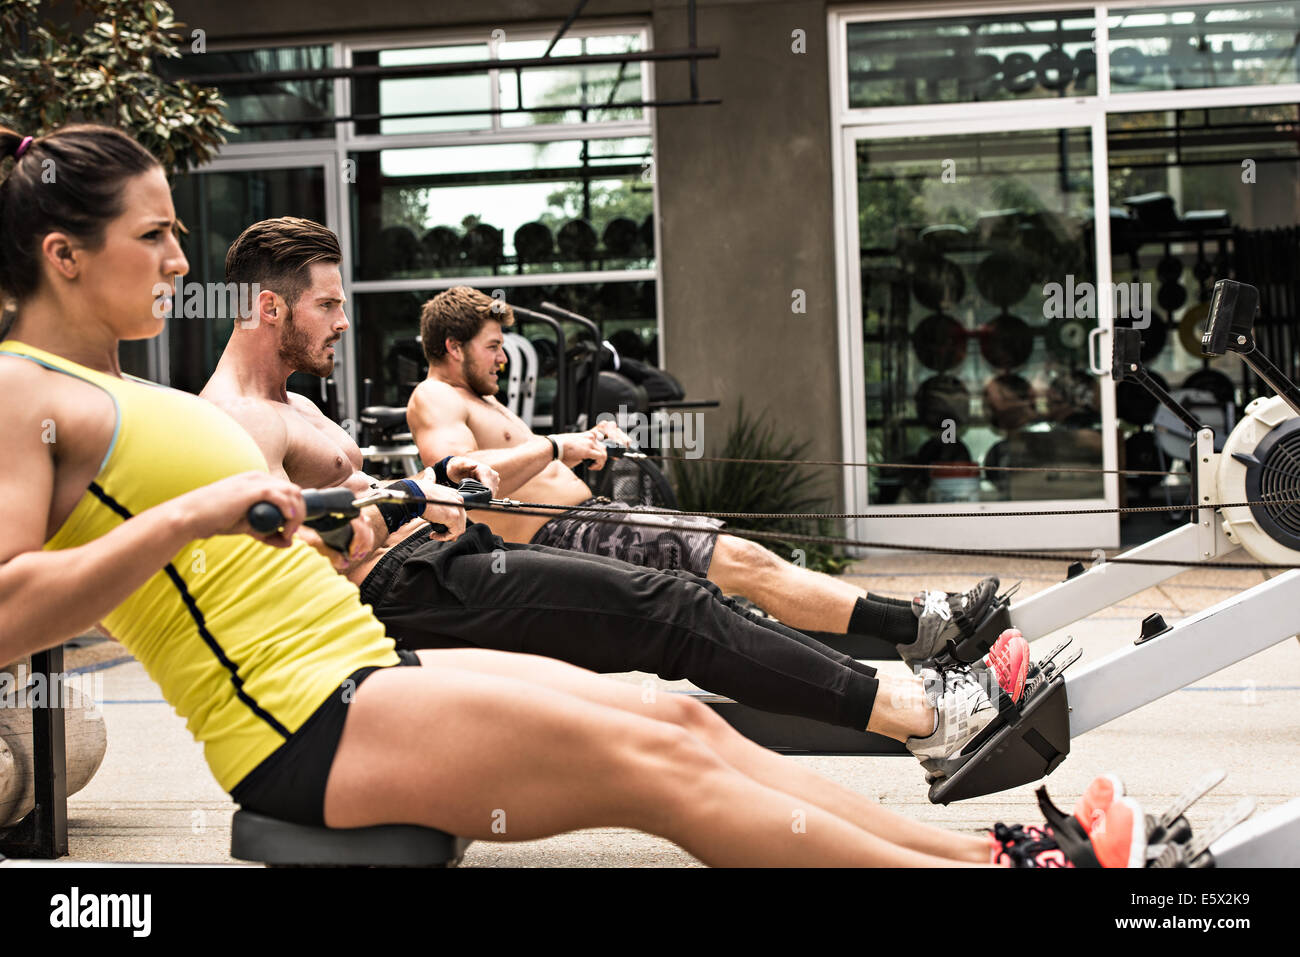 Bodybuilders on rowing machine outdoors - Stock Image